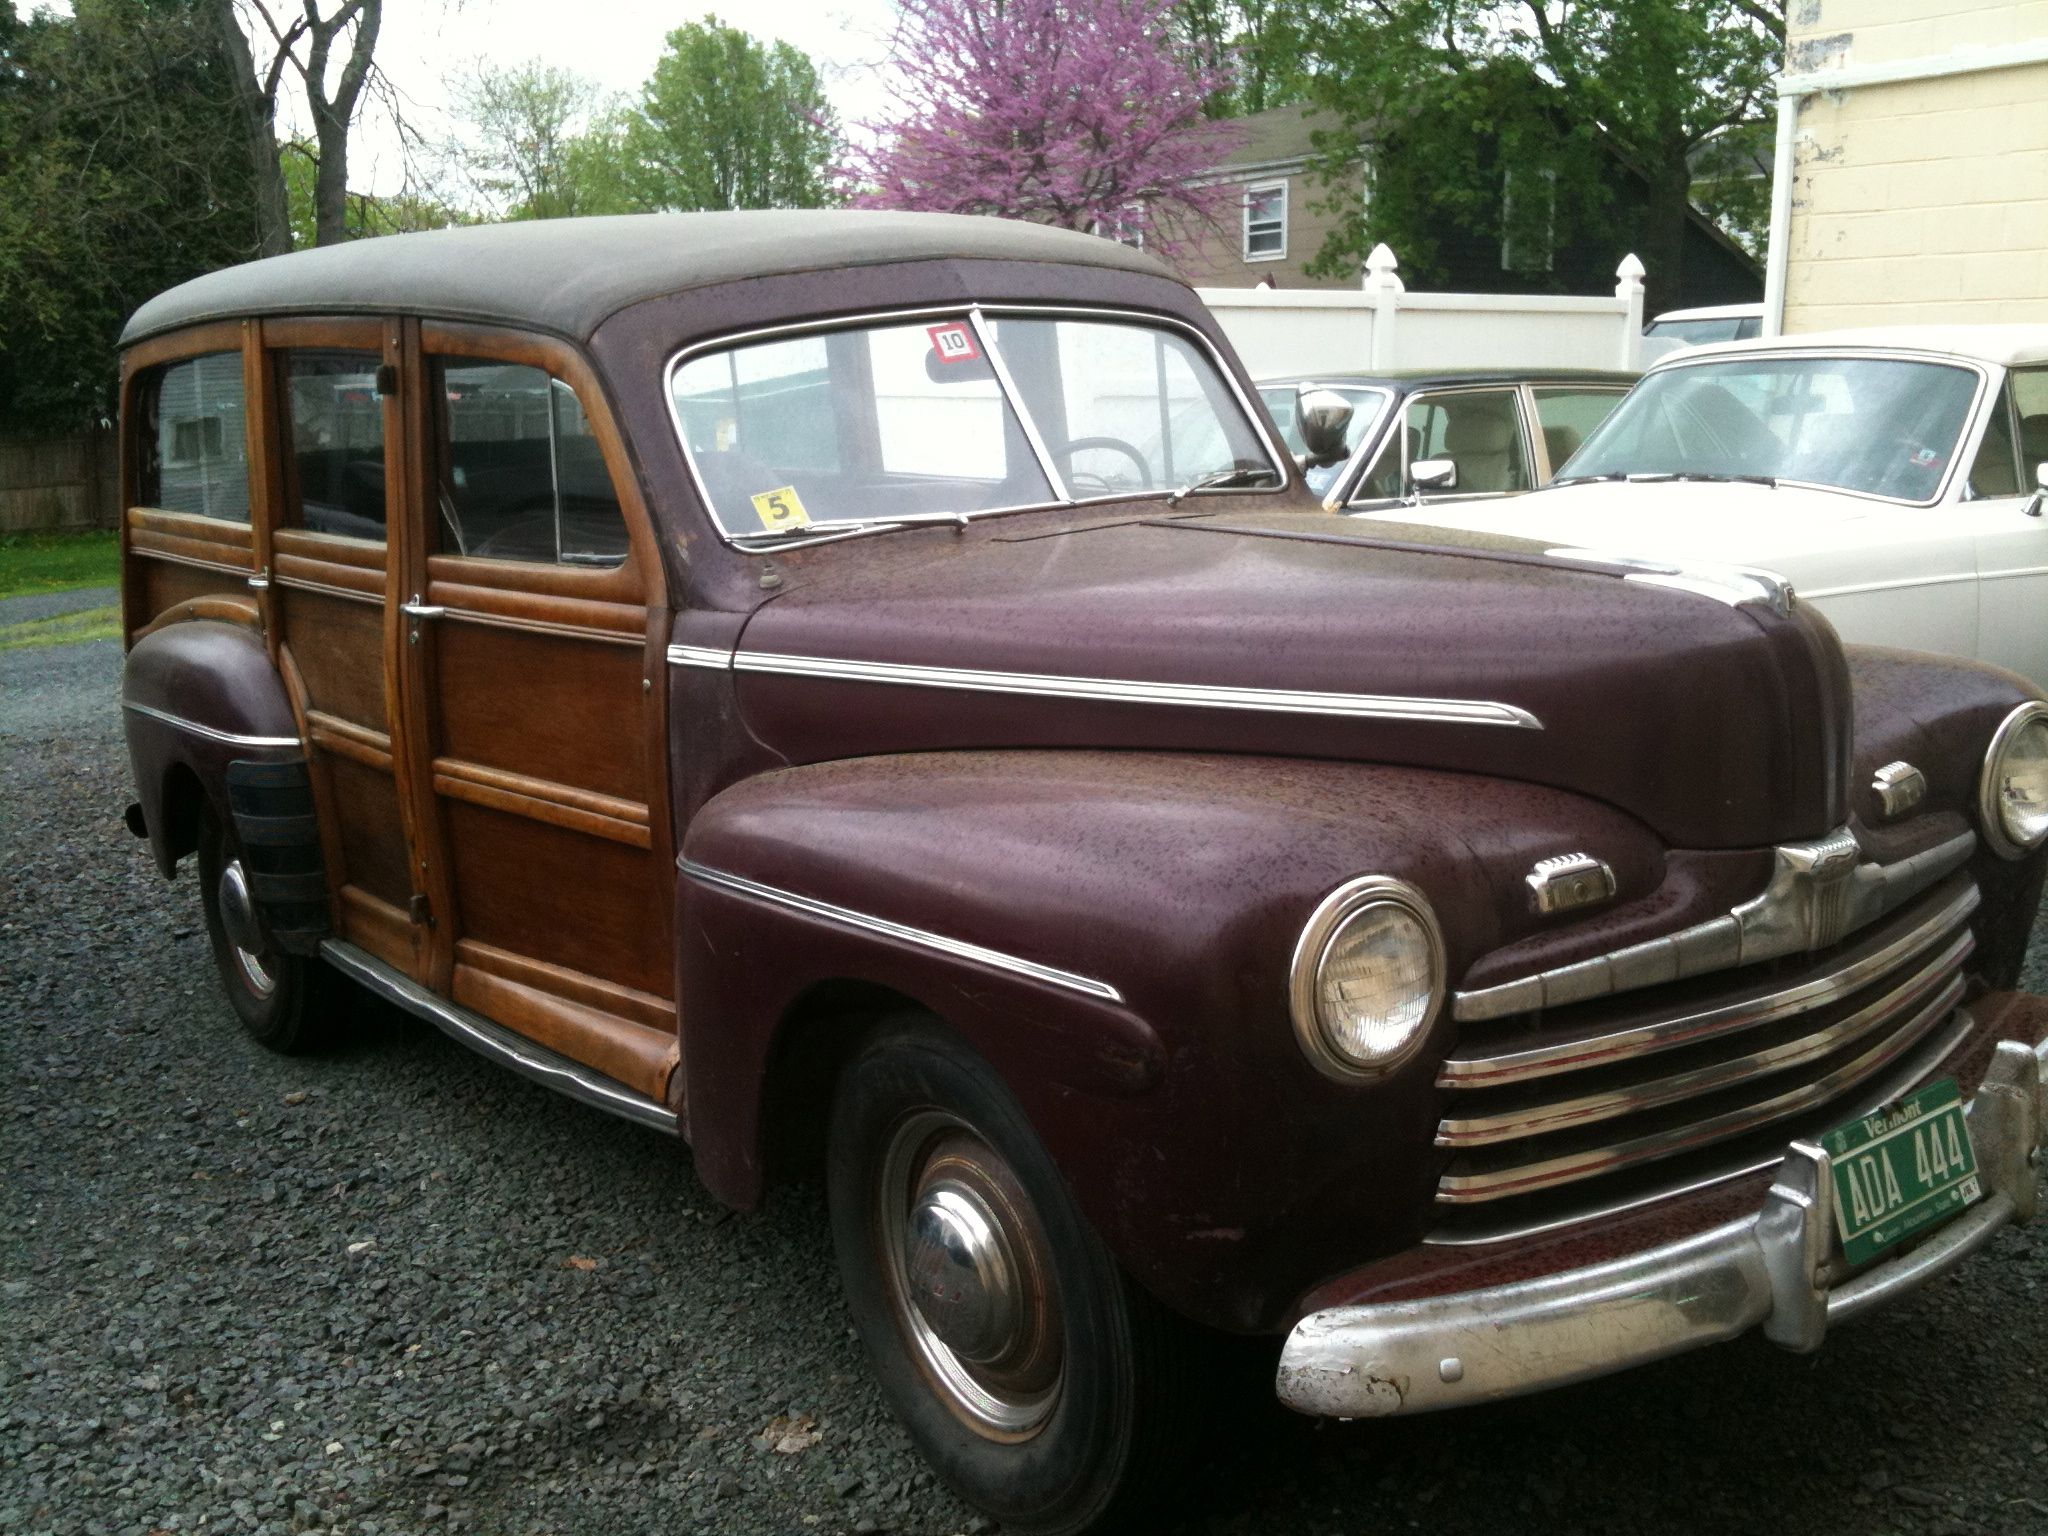 A sorry example of this great American icon, The Woody!